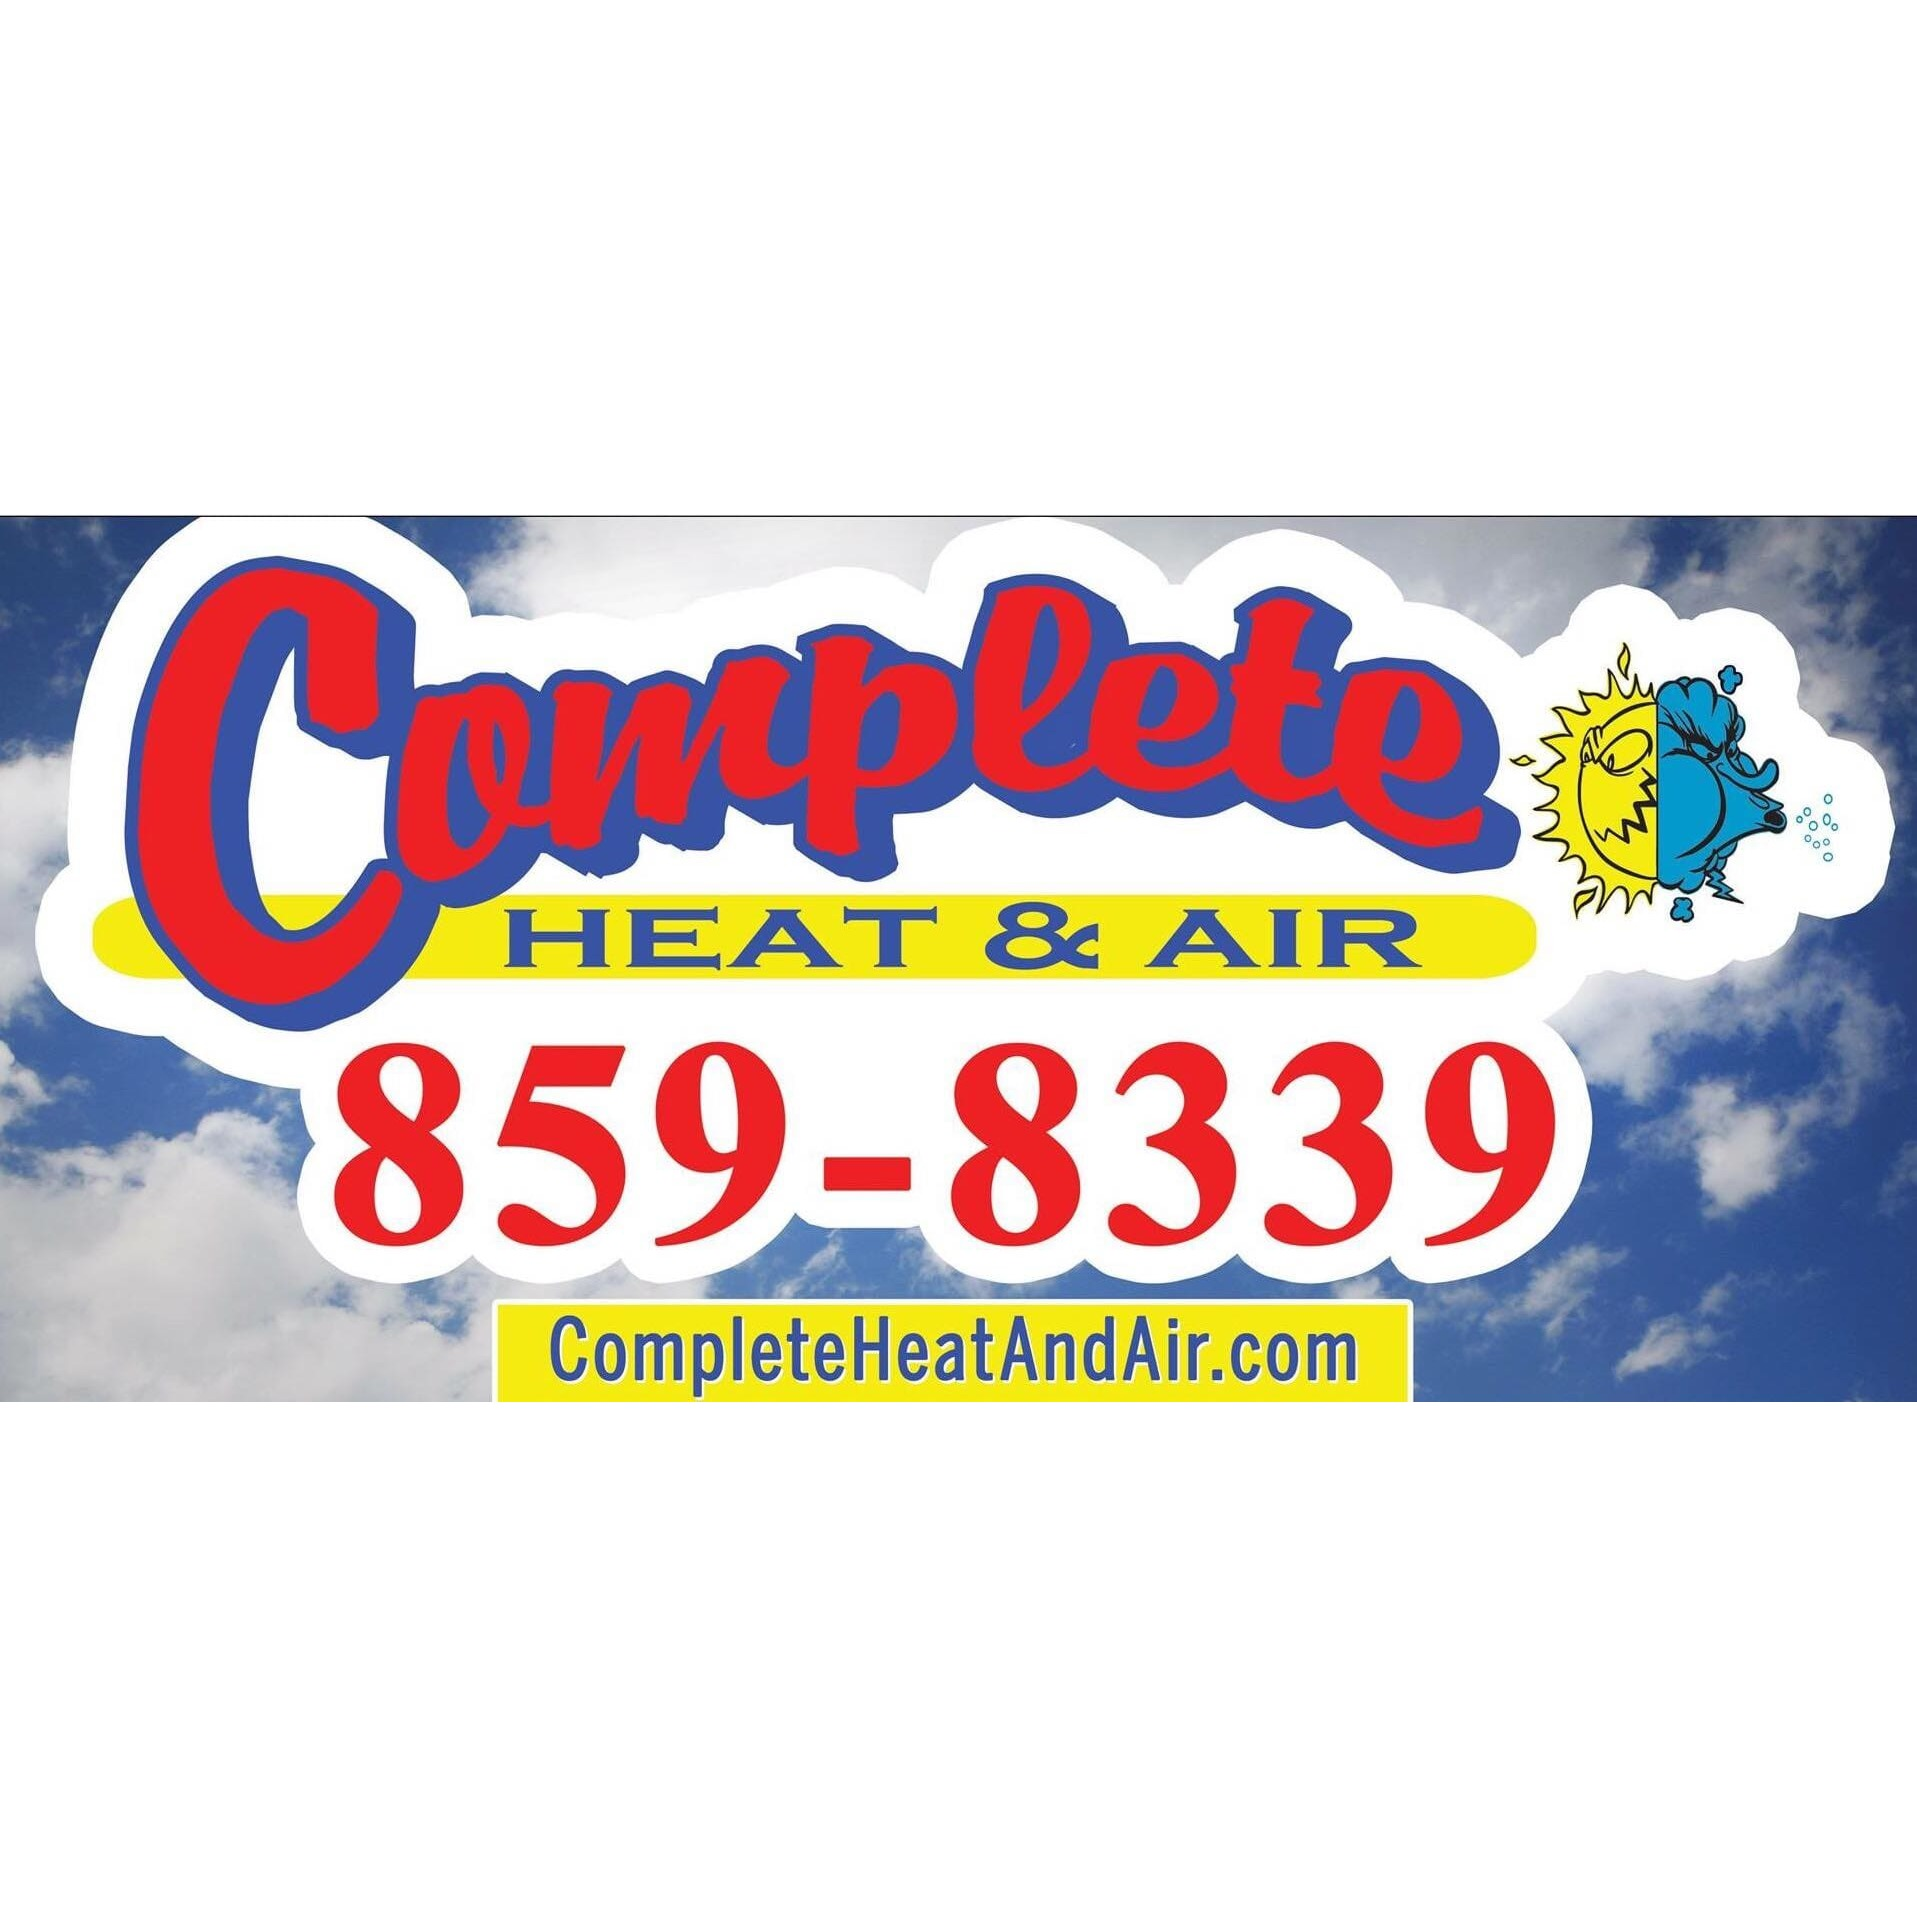 Complete Heat & Air, Easley South Carolina (sc. Ruby On Rails Create Database. Physical Therapy Schools In Sacramento. Marketing Idea For Small Business. Rehab Facilities In Los Angeles